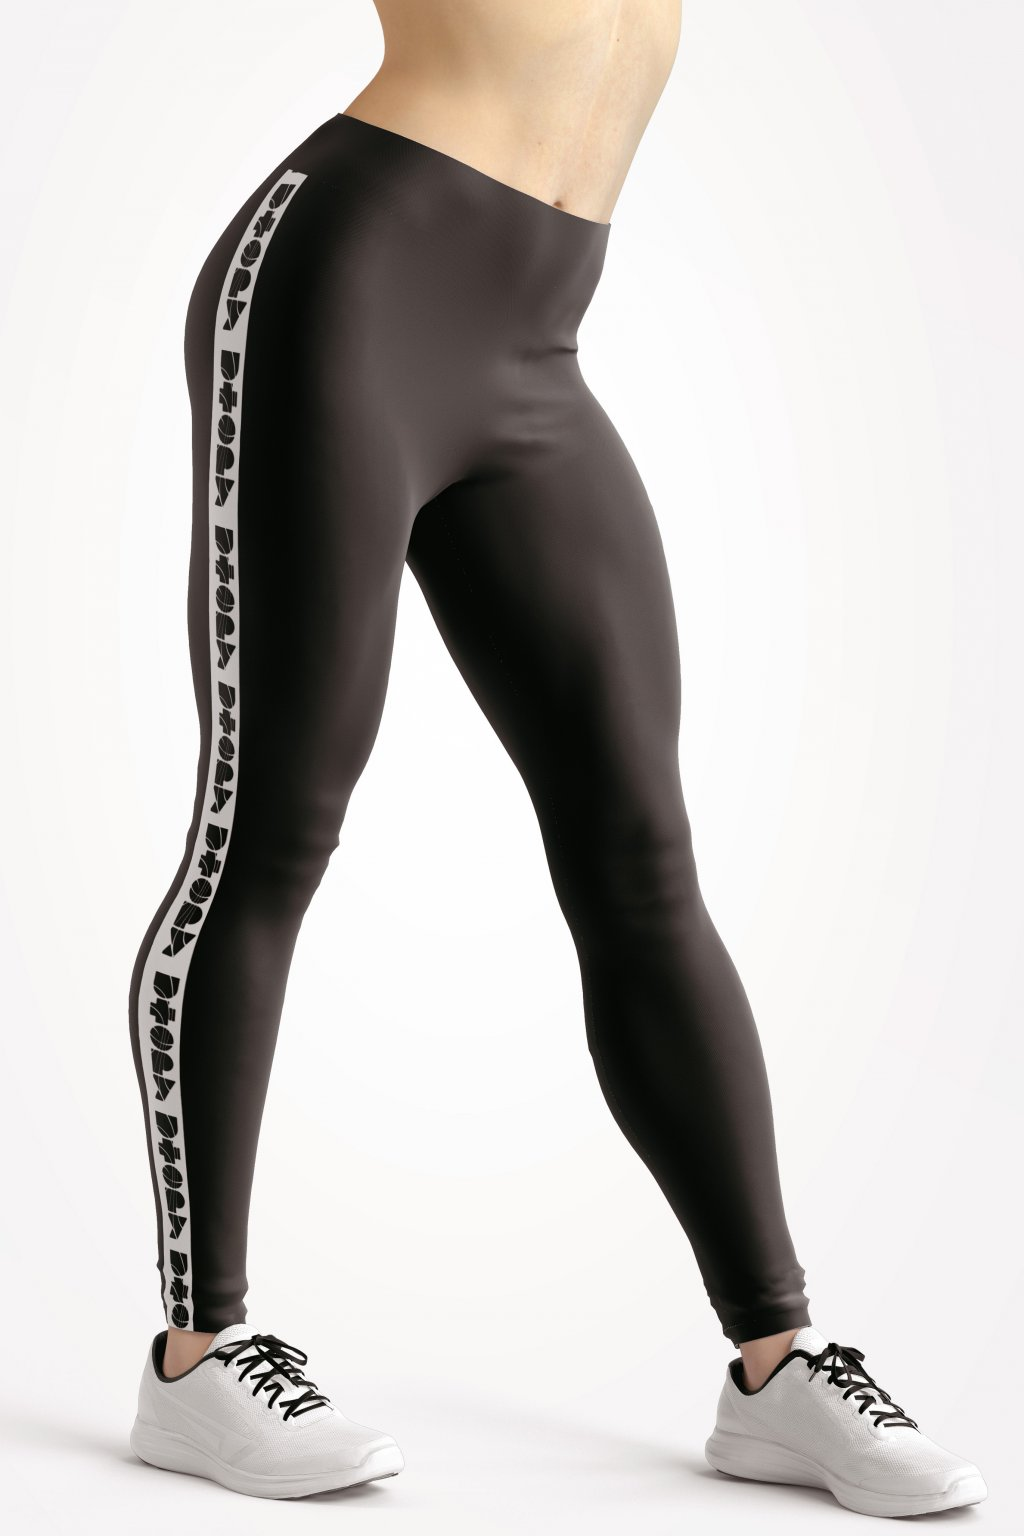 basic collection black utopy leggings front by utopy v2